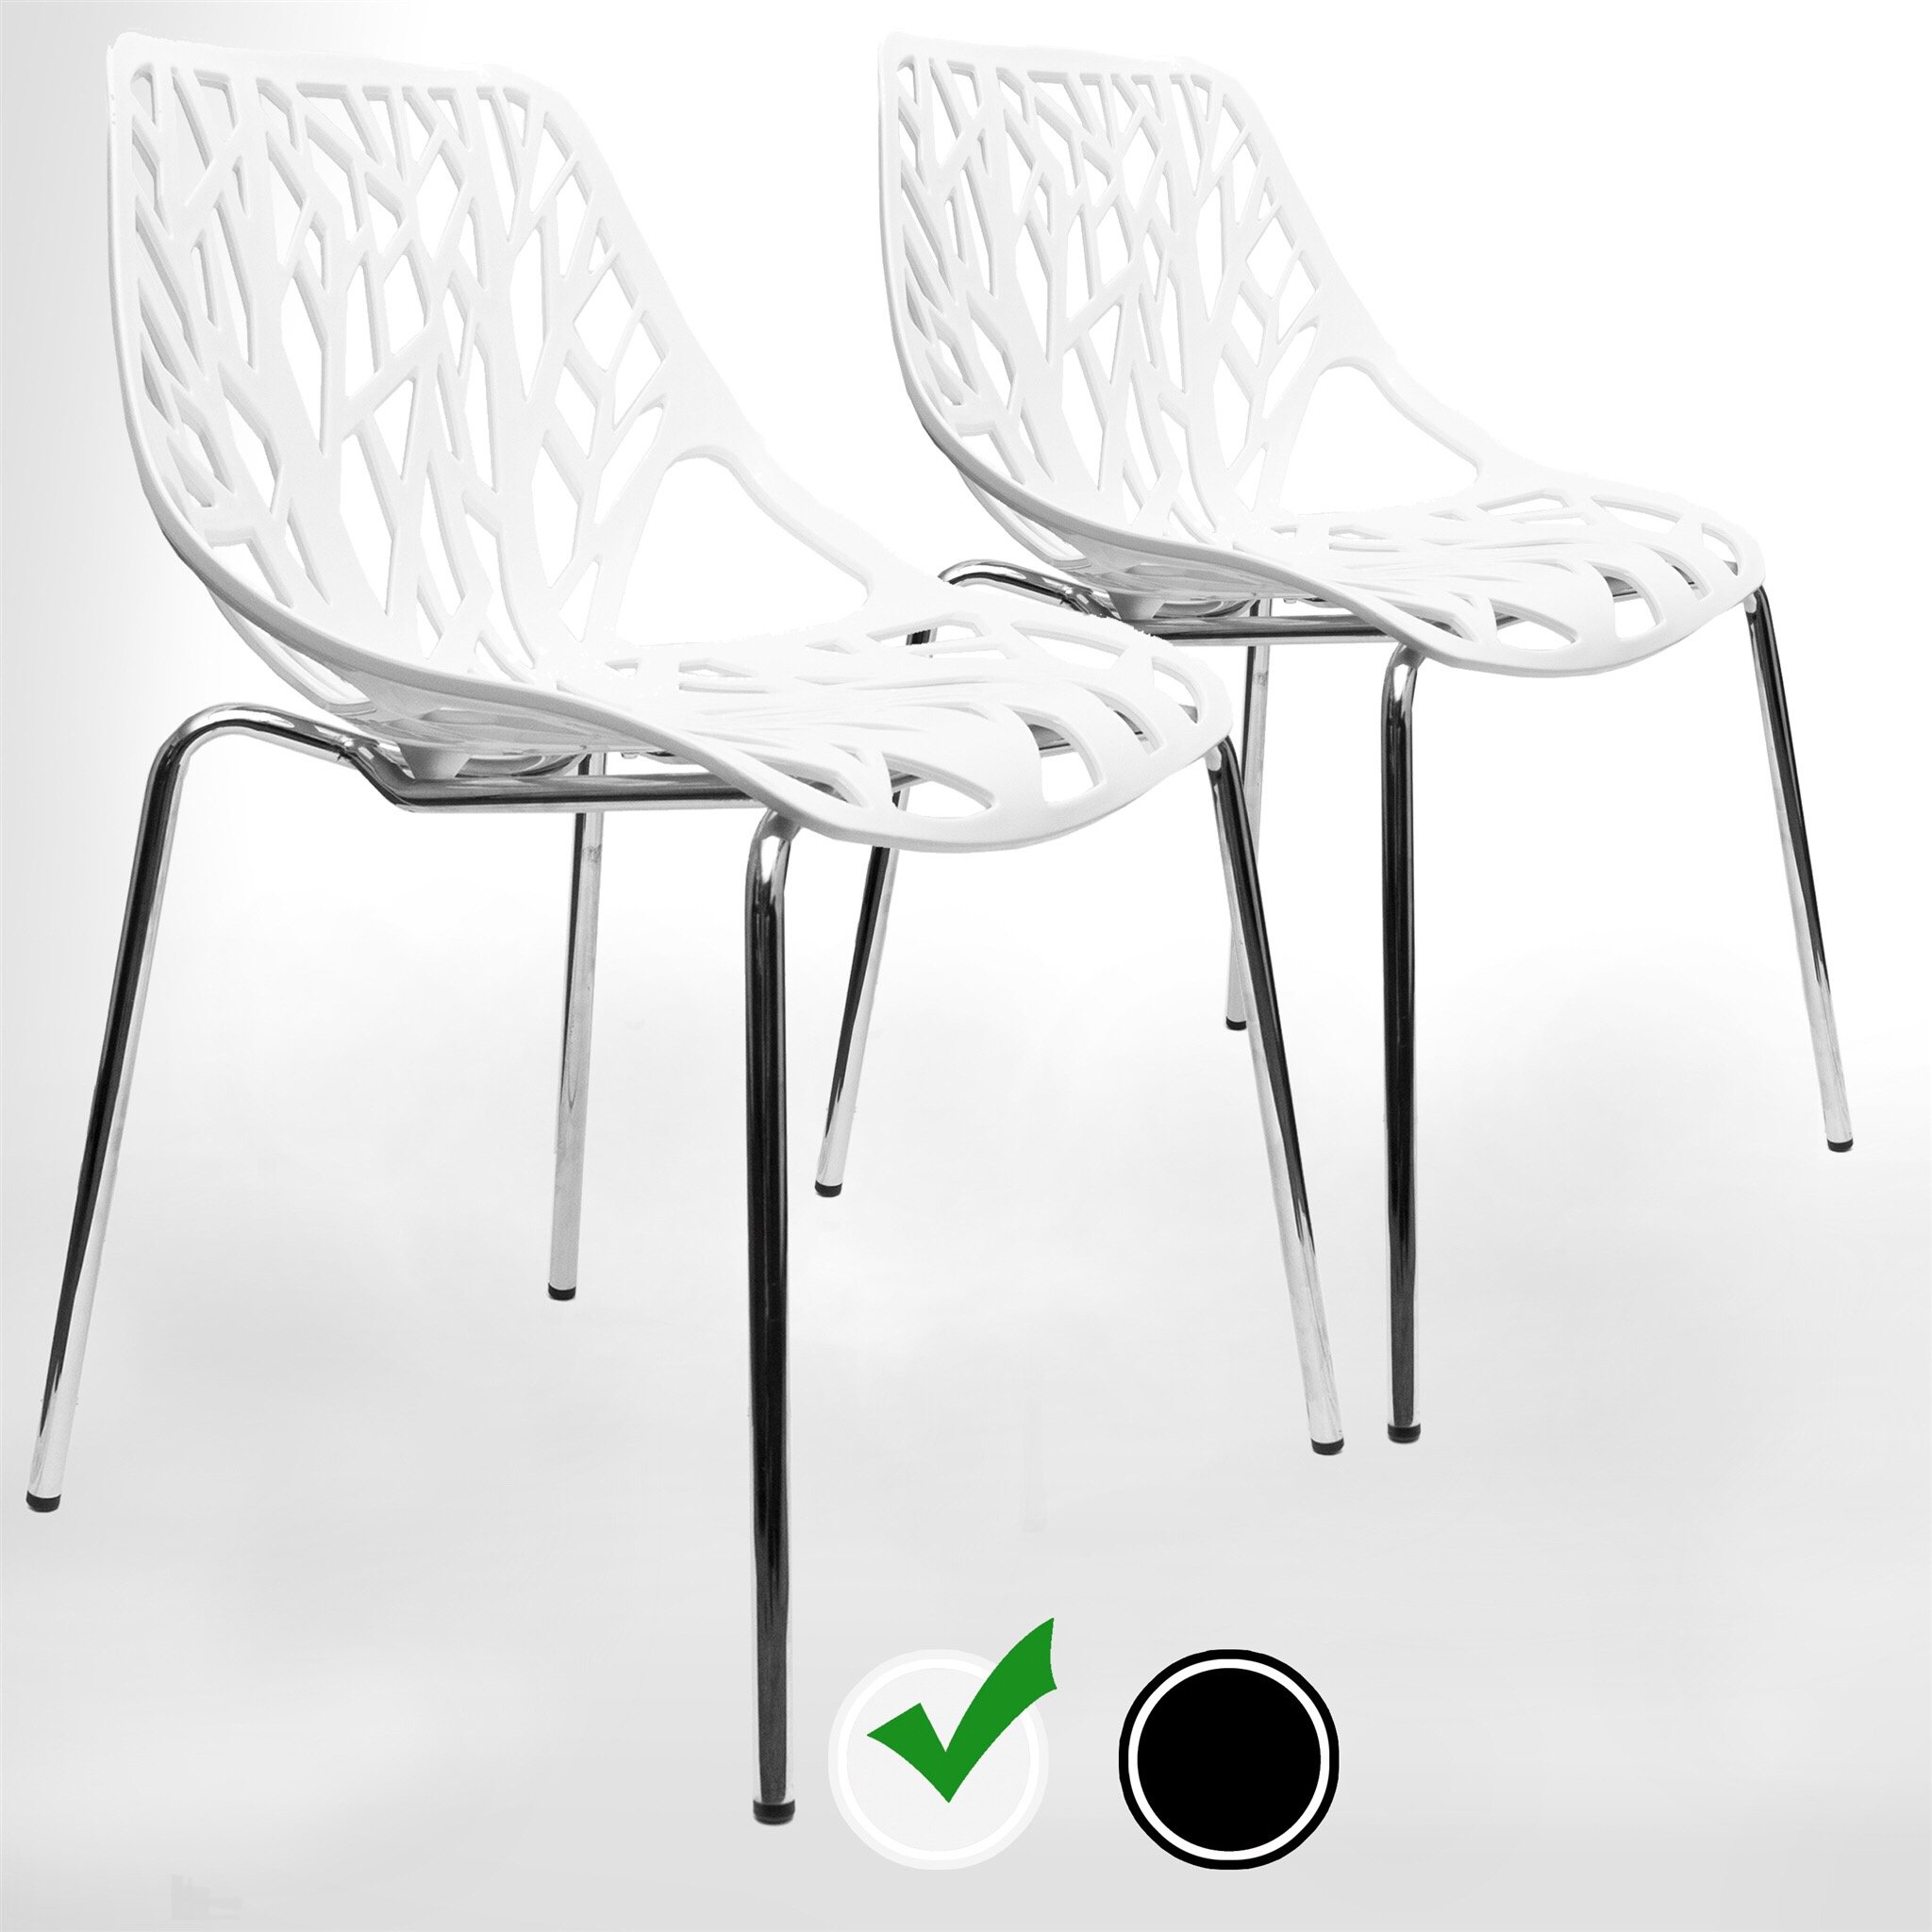 UrbanMod Modern Dining Chairs (Set of 2) by, White Chairs, Kid-Friendly Birch Chairs, Stackable Modern Chair, Mid Century Dining Chair by UrbanMod